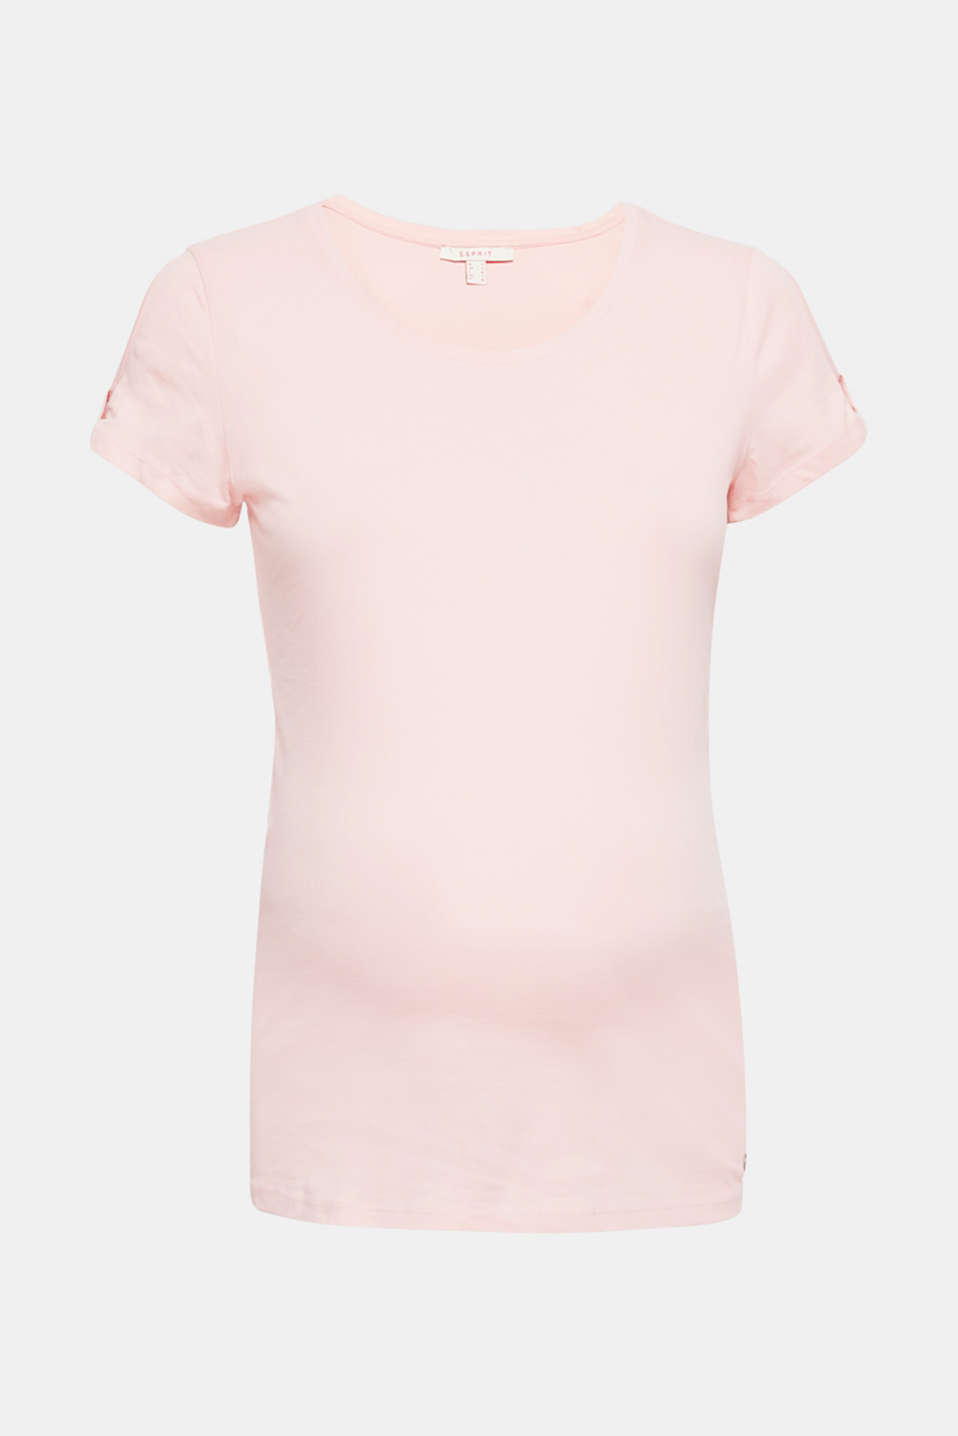 This versatile cotton top features cut-outs on the short sleeves for that certain something!